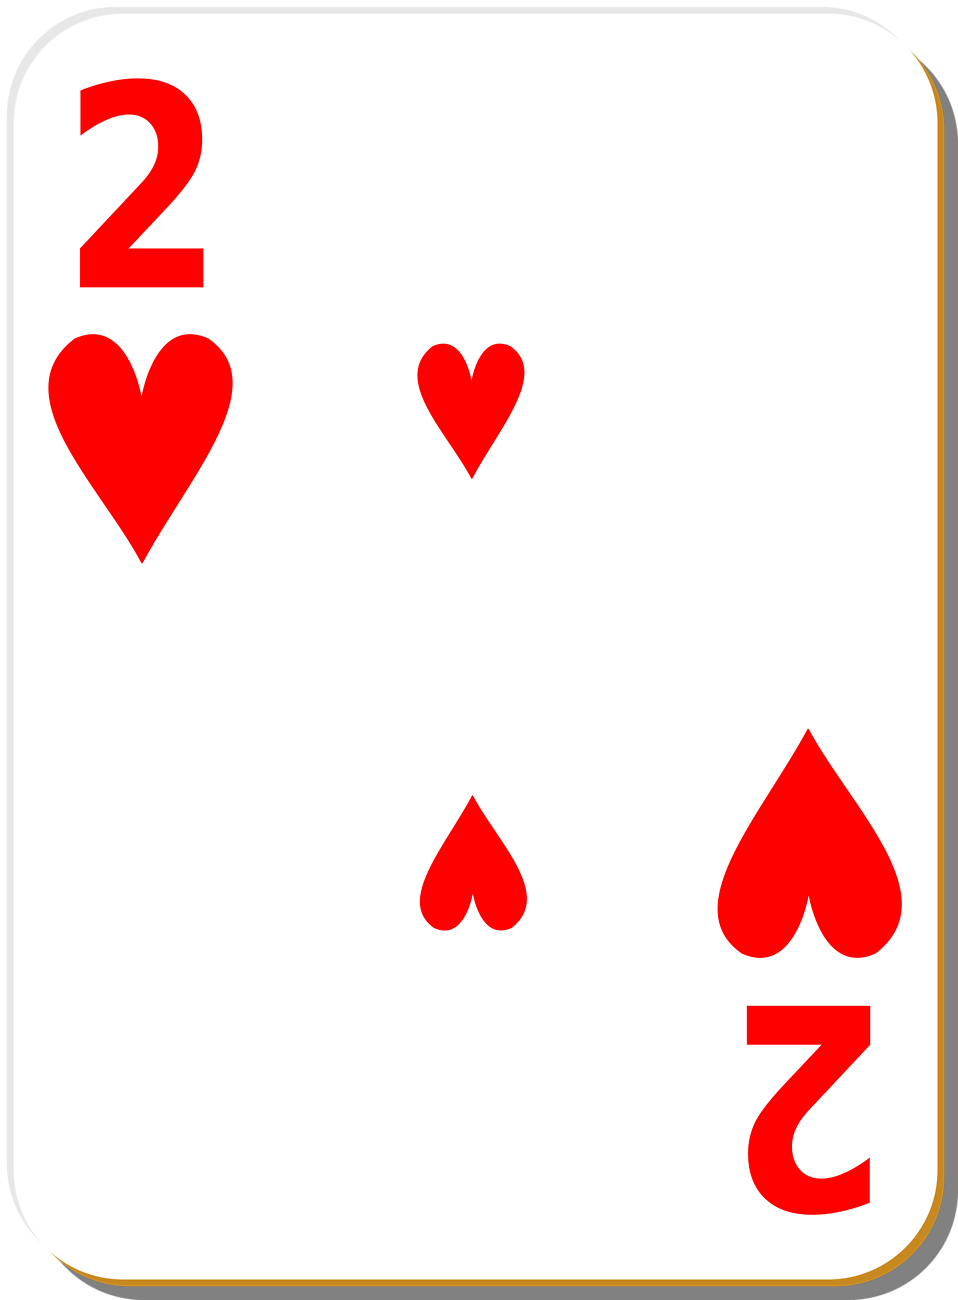 hight resolution of 958x1300 playing card free stock photo illustration of a two of hearts